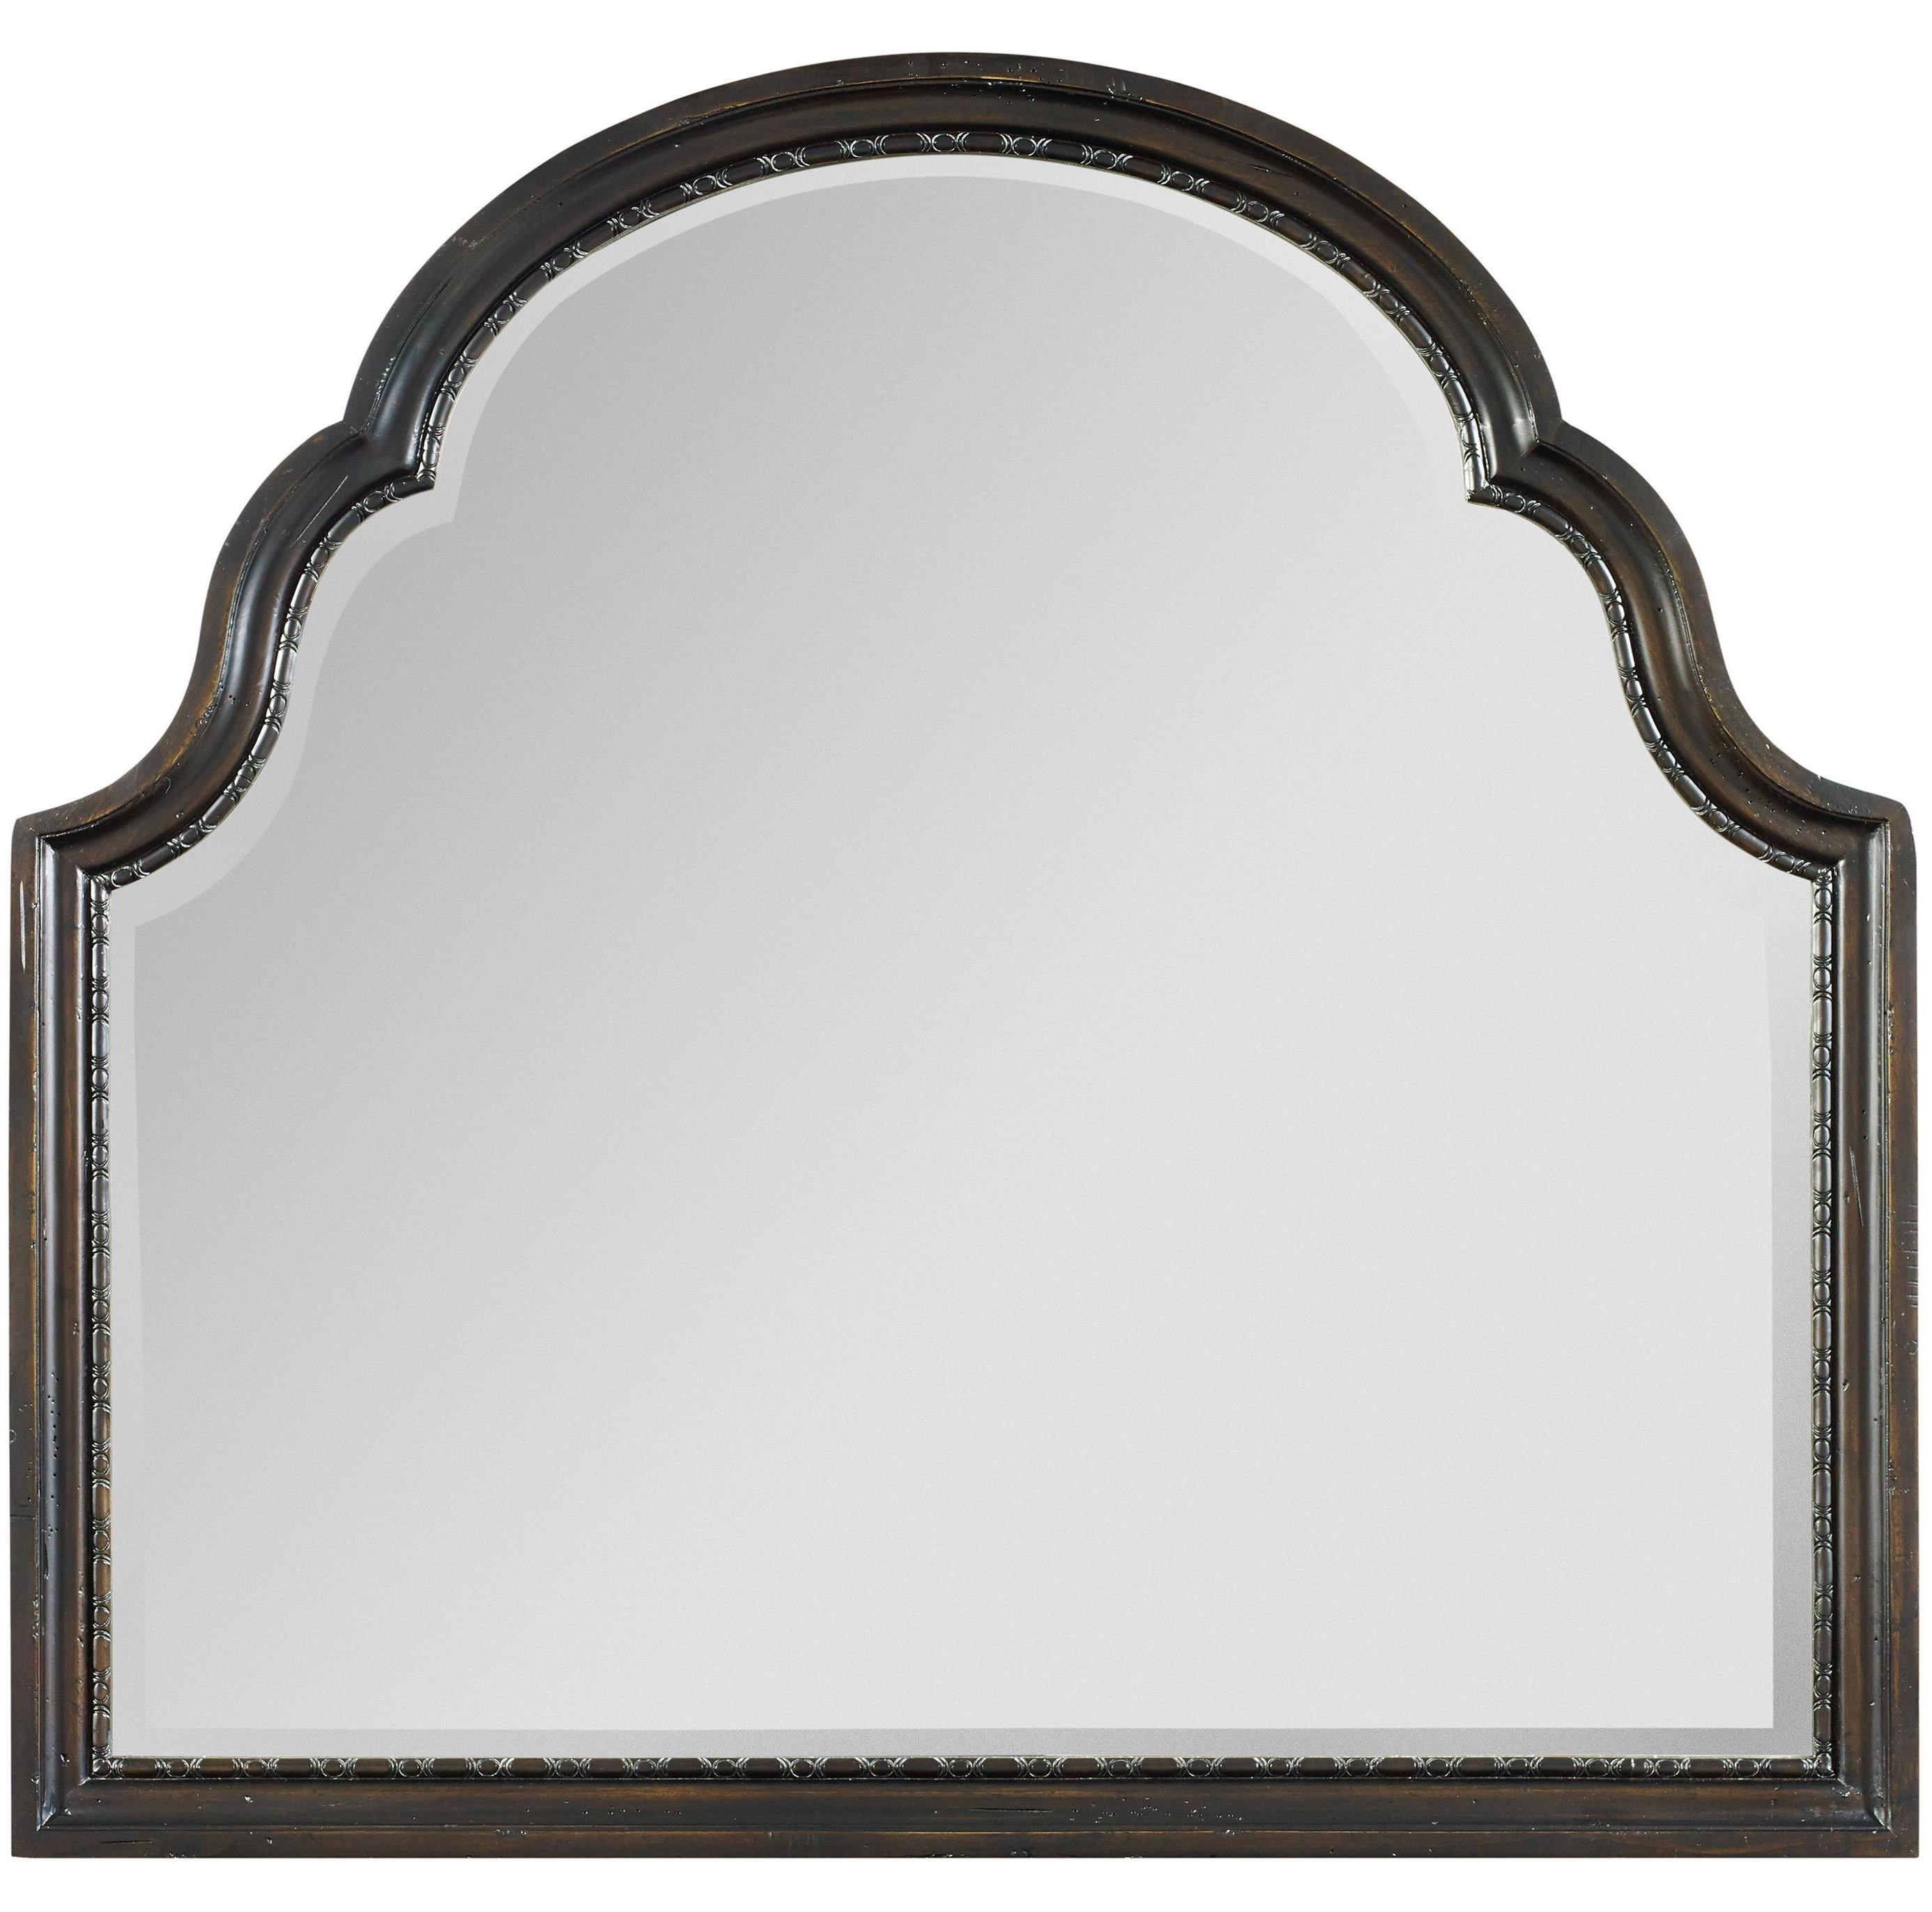 Hooker Furniture Treviso Shaped Landscape Mirror With Rounded Top